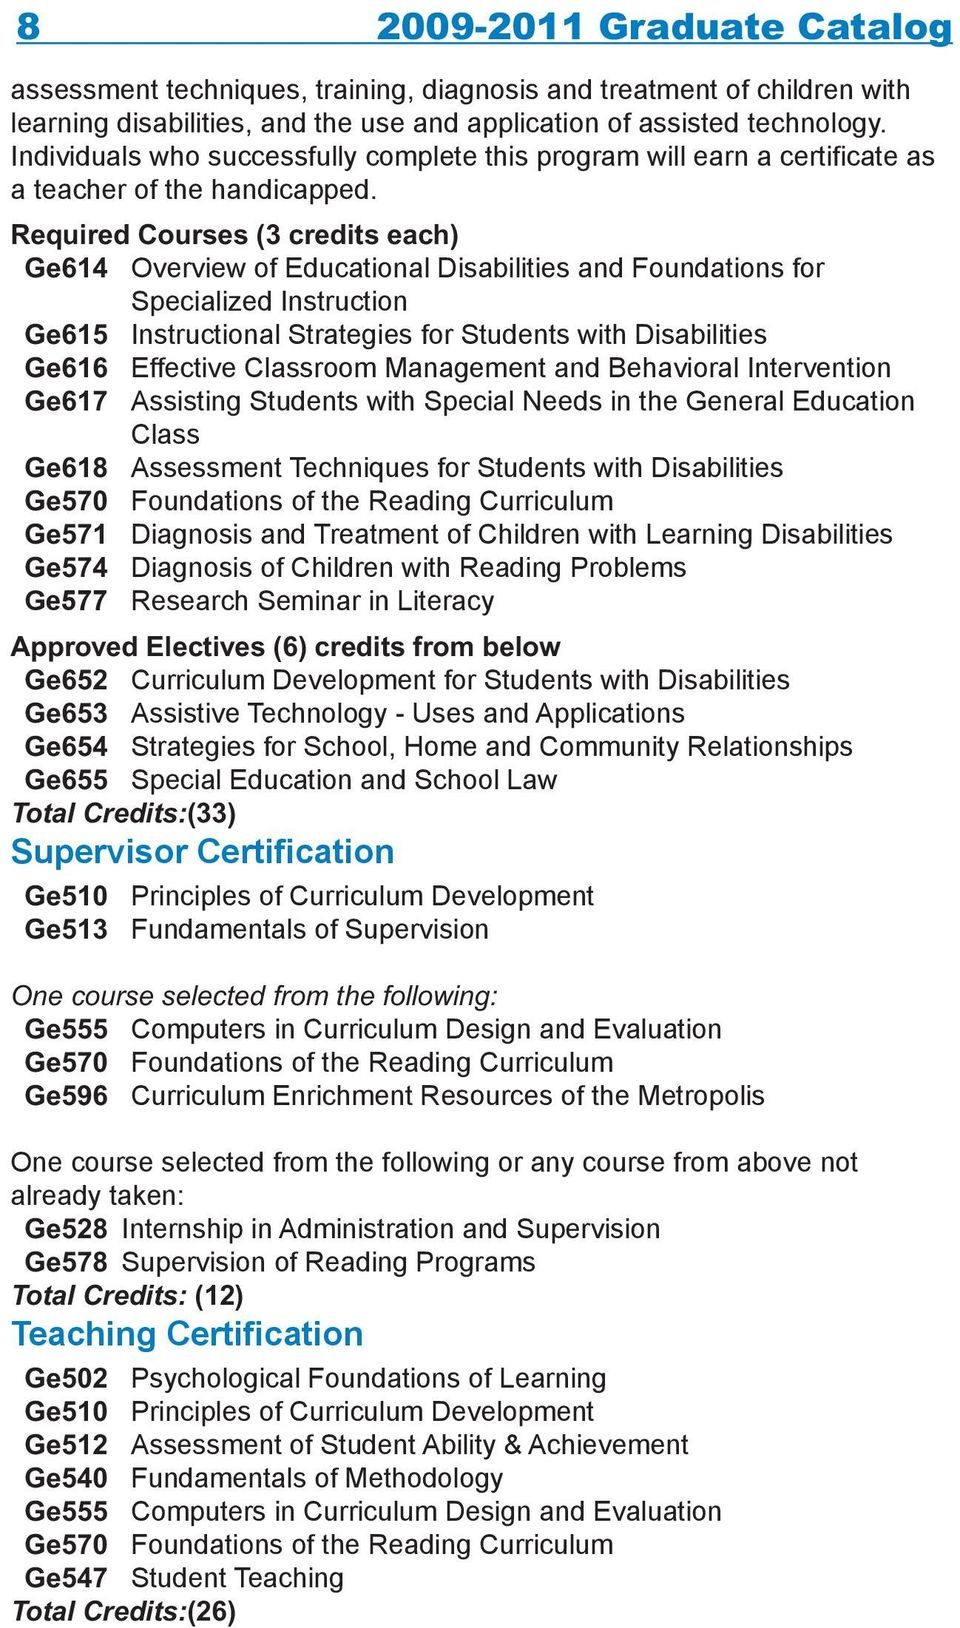 Required Courses (3 credits each) Ge614 Overview of Educational Disabilities and Foundations for Specialized Instruction Ge615 Instructional Strategies for Students with Disabilities Ge616 Effective